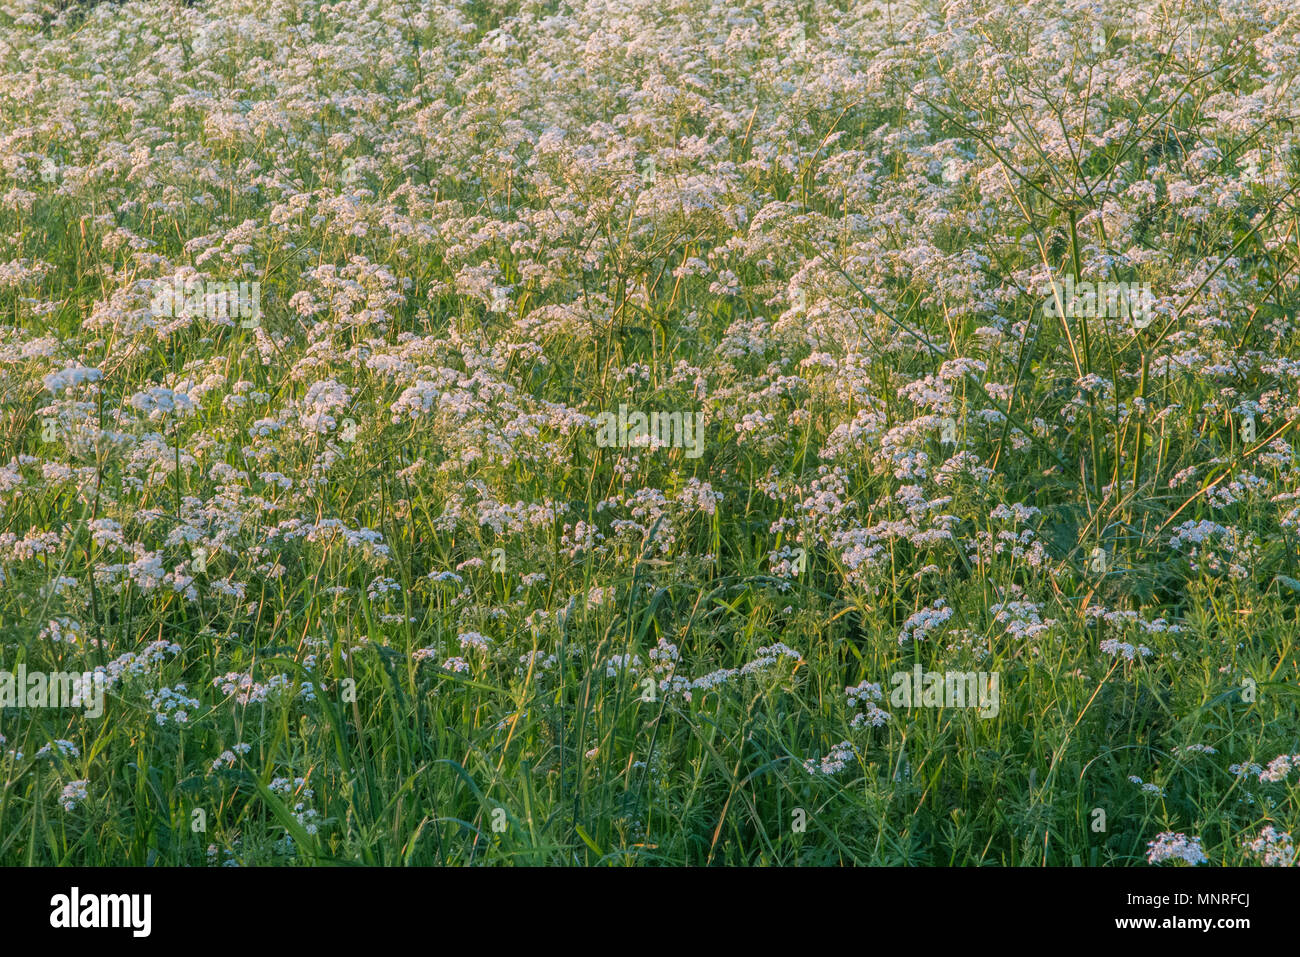 Cow Parsley in the evening sunshine - Stock Image